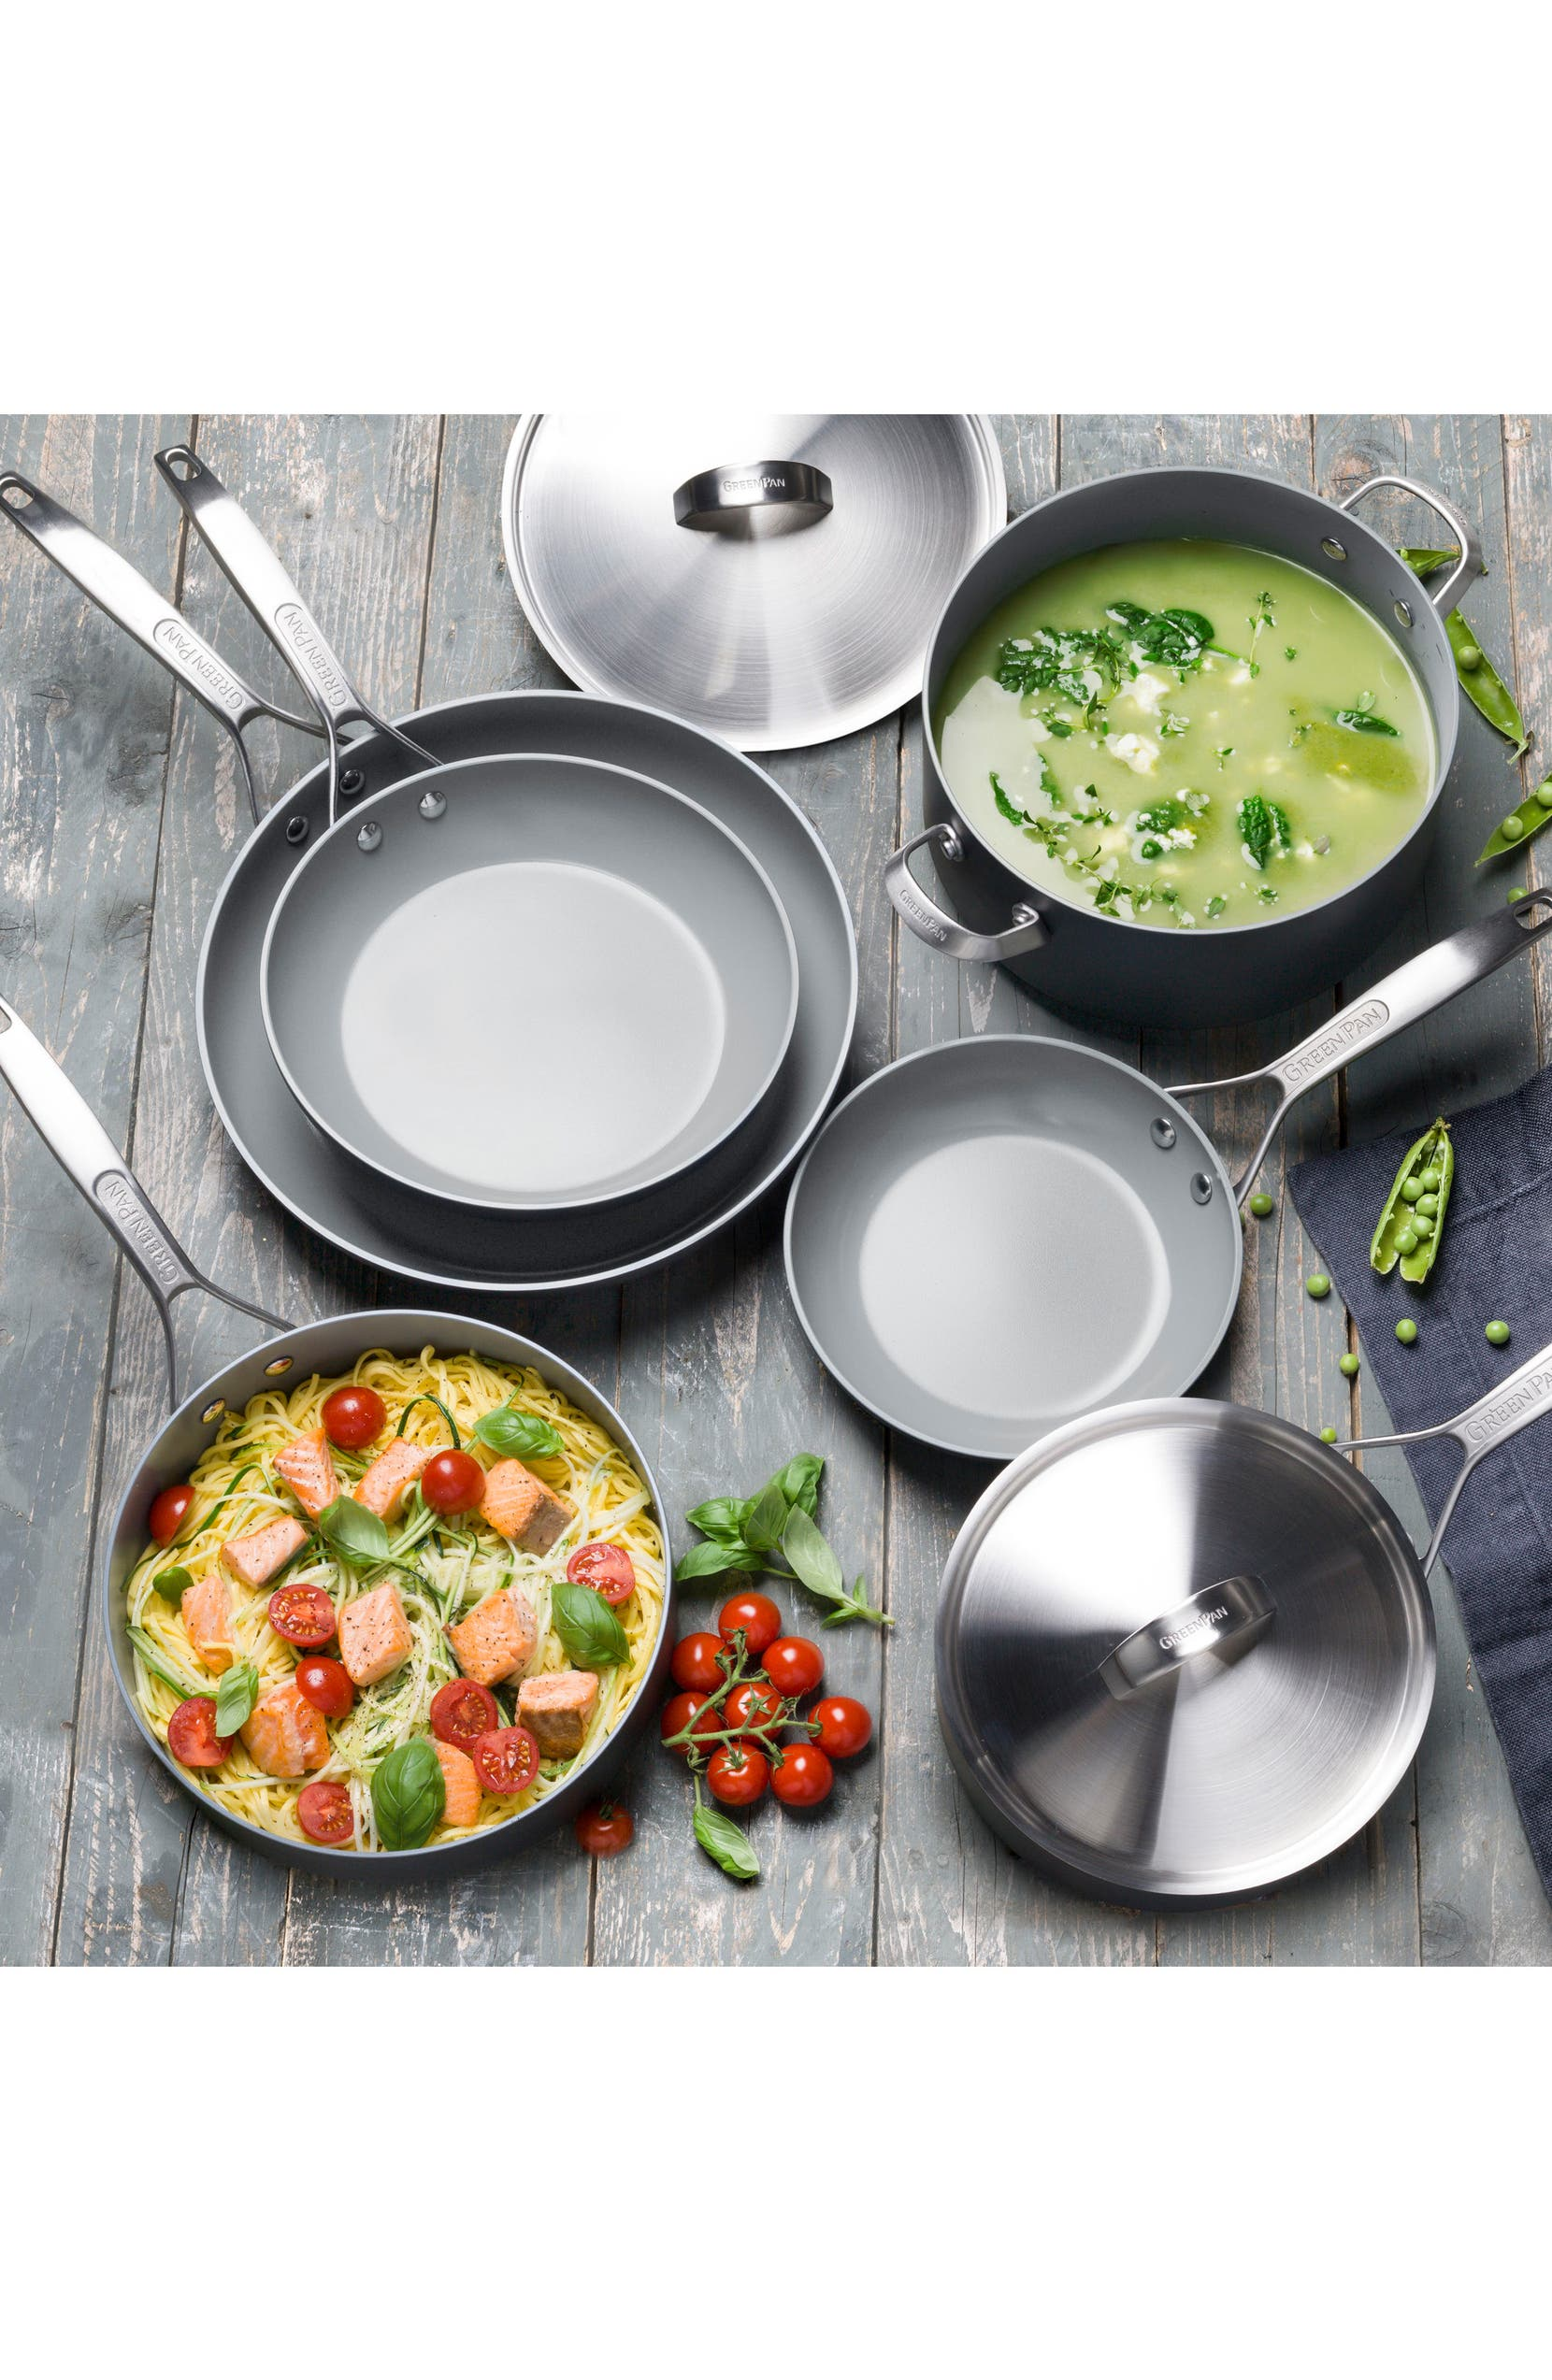 Paris Pro 11-Piece Anodized Aluminum Ceramic Cookware Set